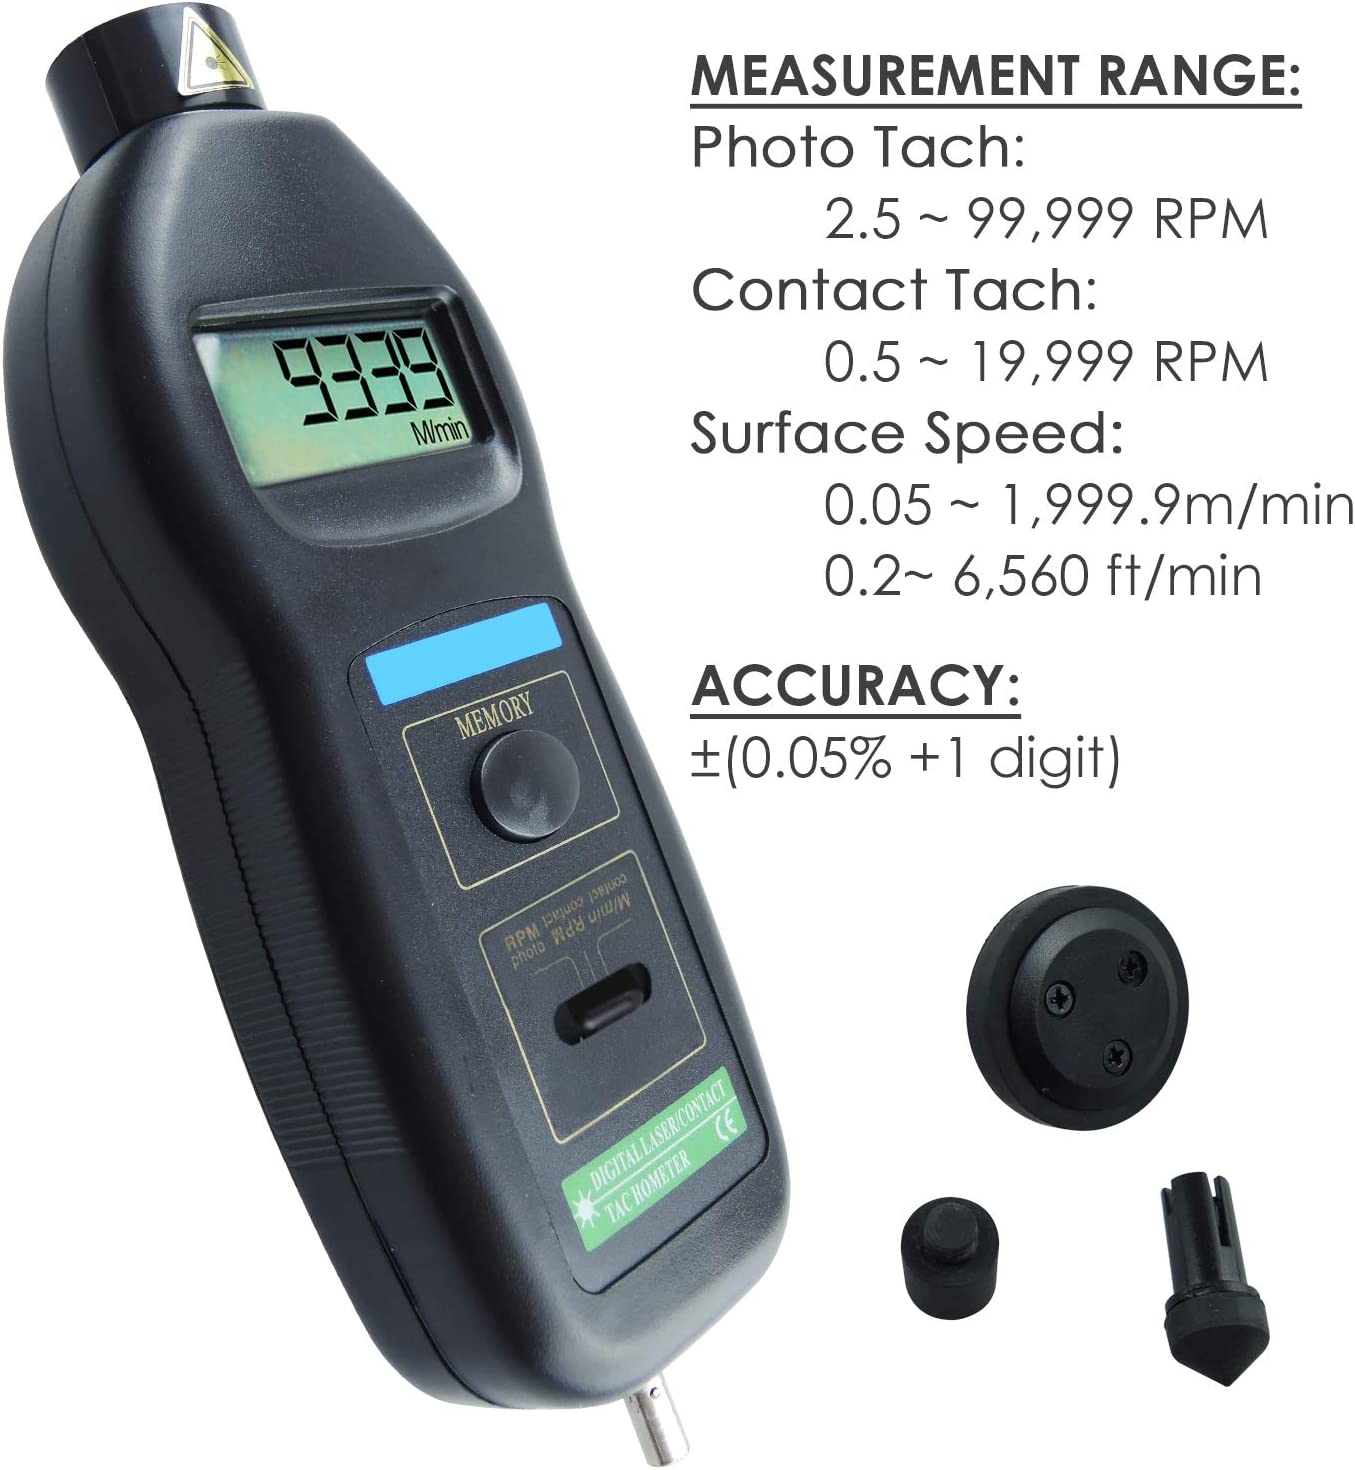 ShiSyan Y-LKUN Digital Tachometer RPM Meter Non-Contact 2.5Rpm-99999Rpm LCD Display Speed Meter Dt2234C Tester Speed